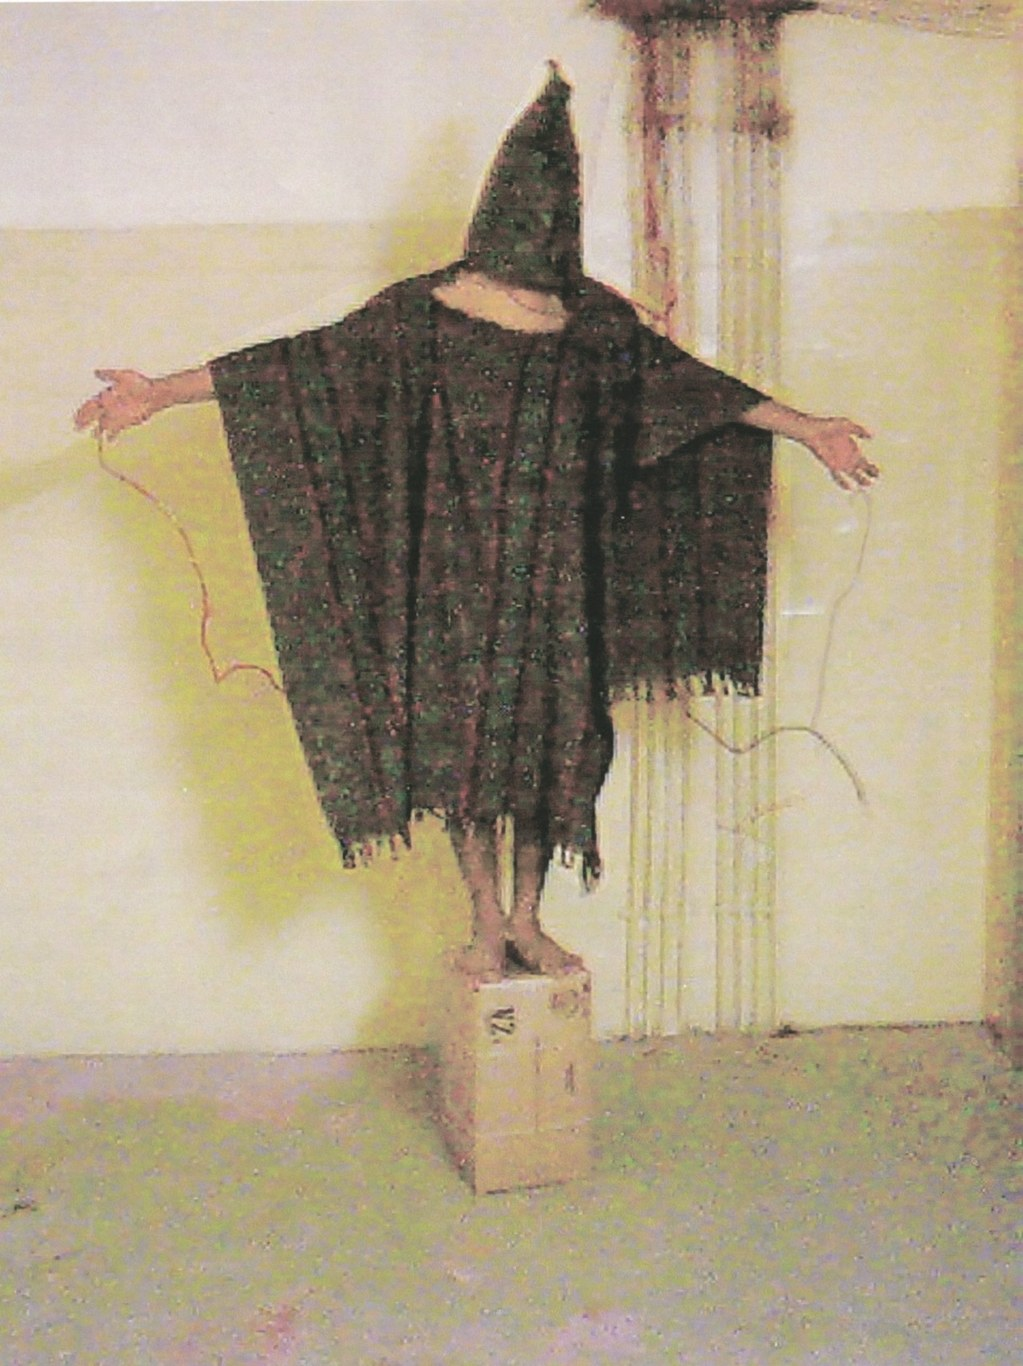 11:01 p.m., Nov. 4, 2003. Detainee with bag over head, standing on box with wires attached. This is one of Staff Sgt. Ivan Frederick's photographs of the prisoner nicknamed Gilligan and later correctly identified as Abdou Hussain Saad Faleh, standing on the box with wires attached to his left and right hand (photograph via Wikimedia Commons)